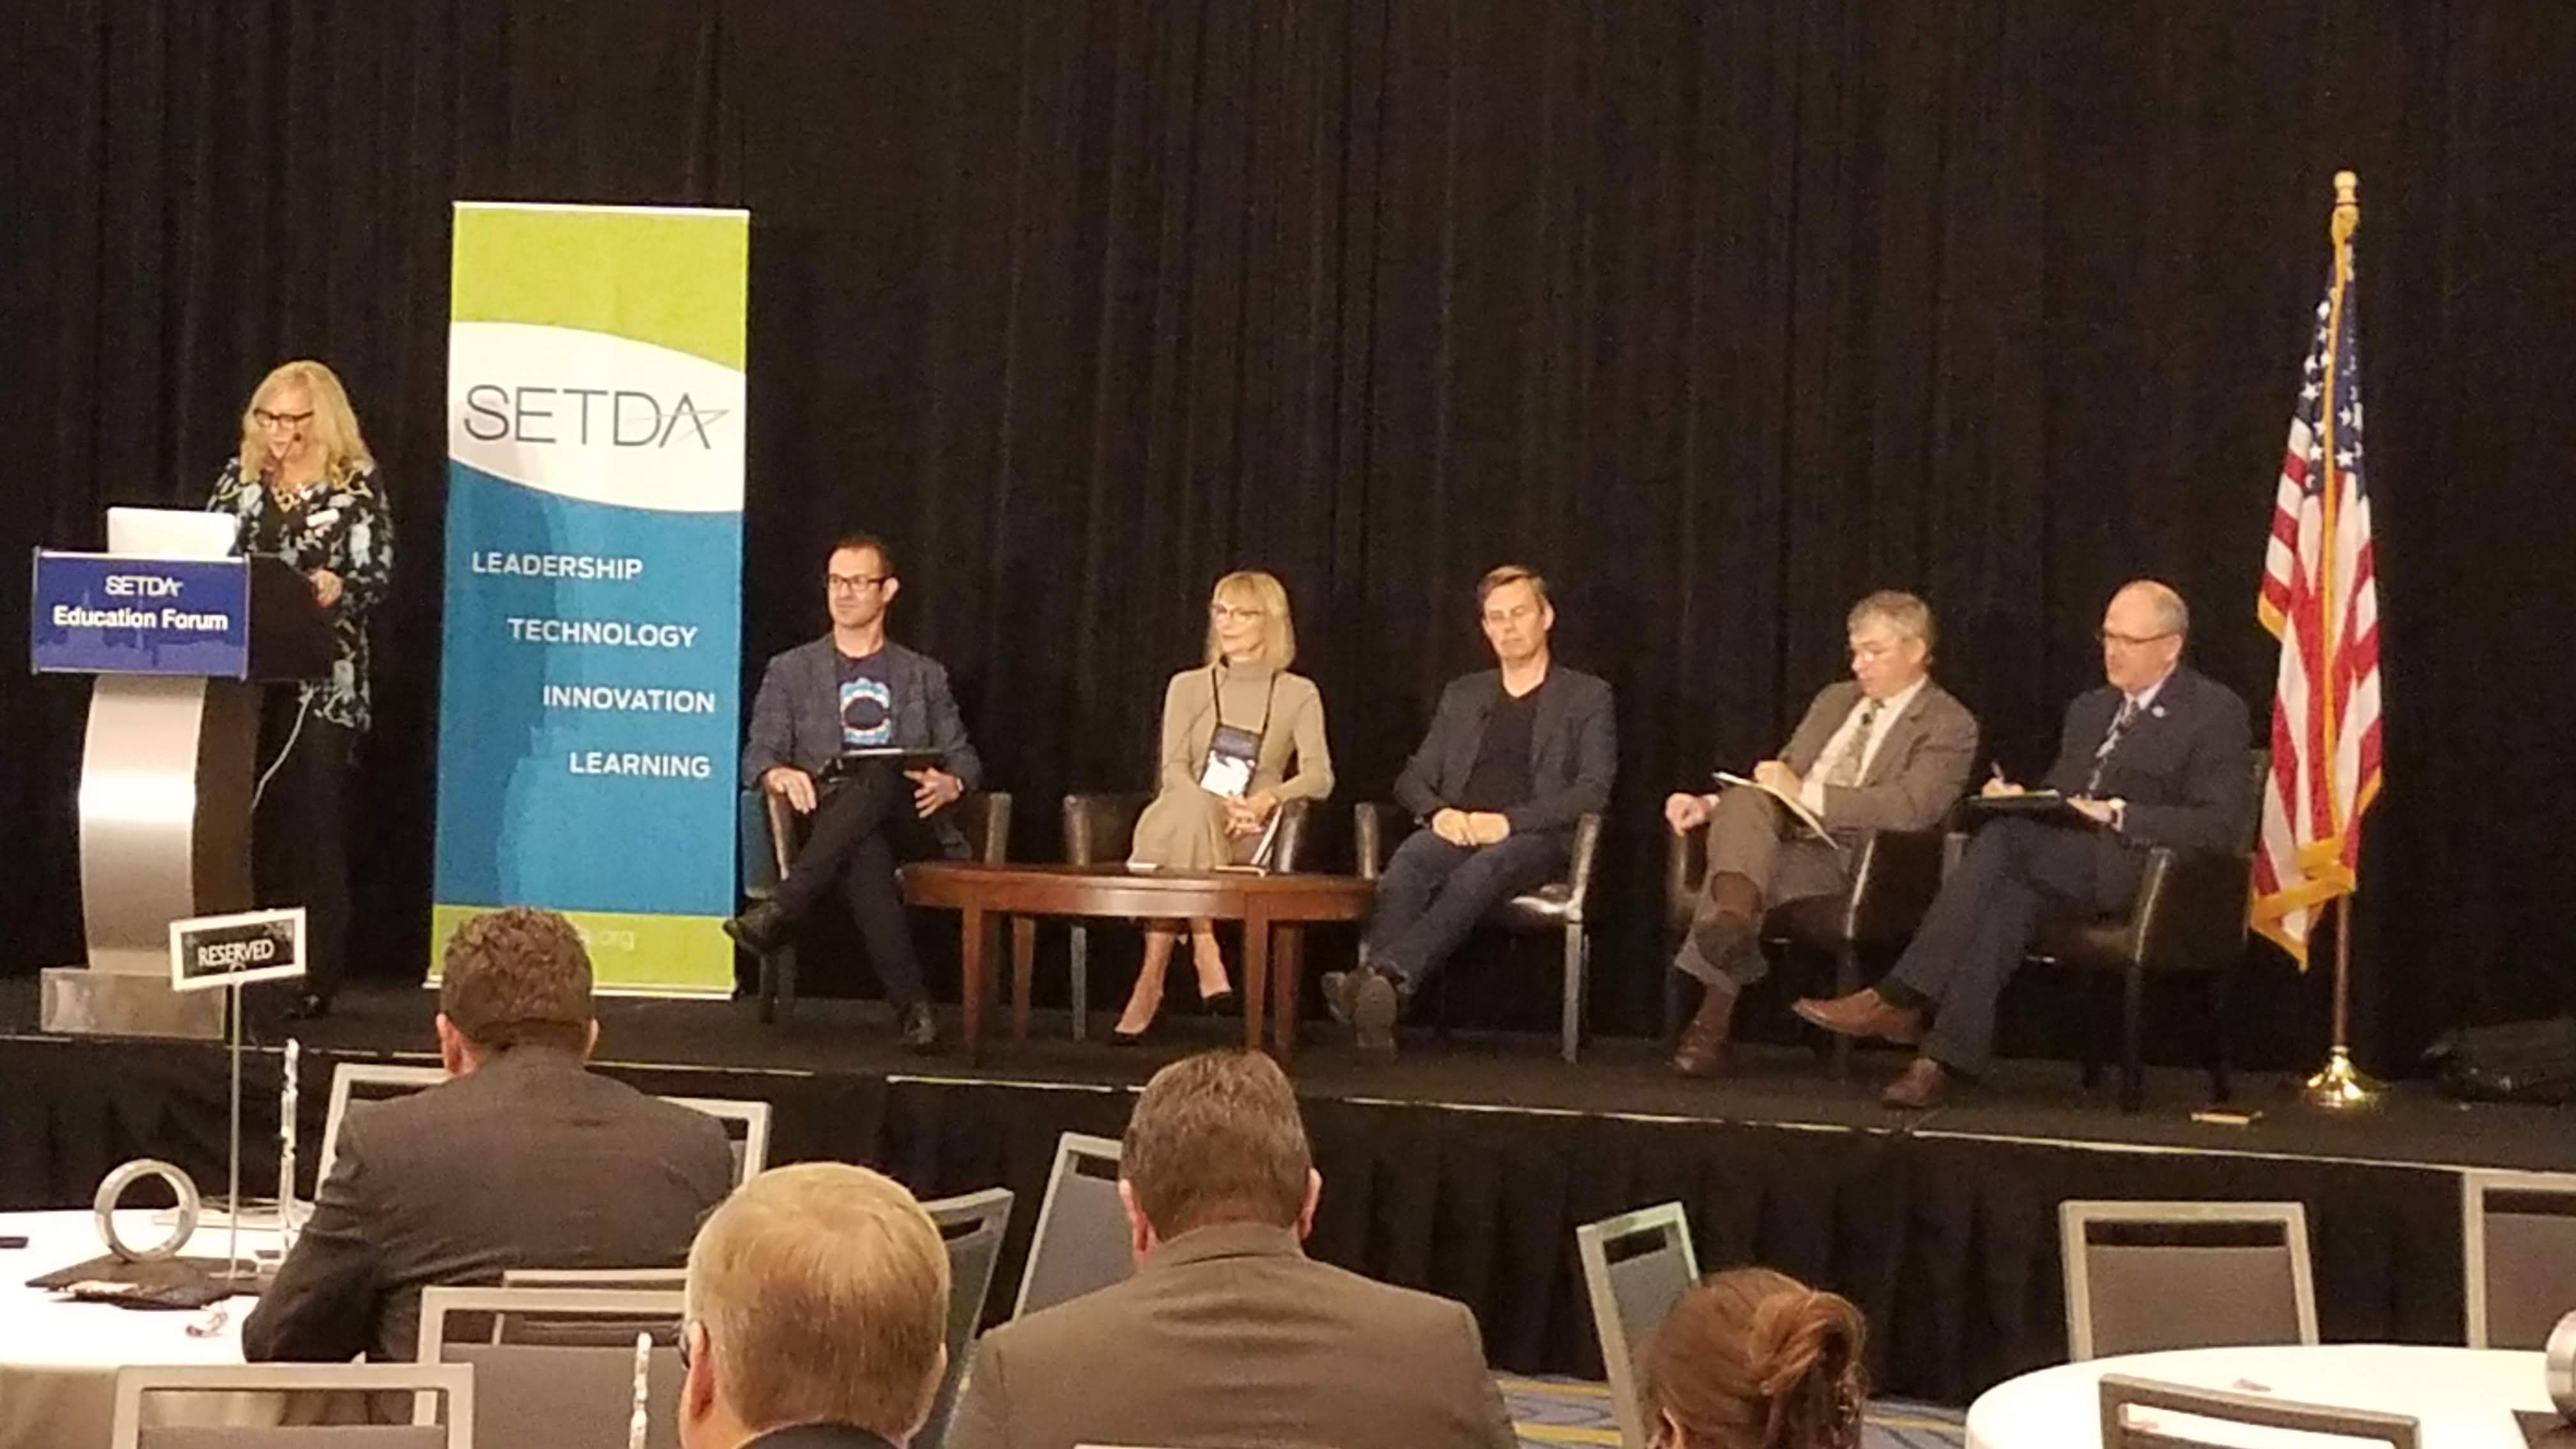 SETDA Panel on stage, with flag and logo banner